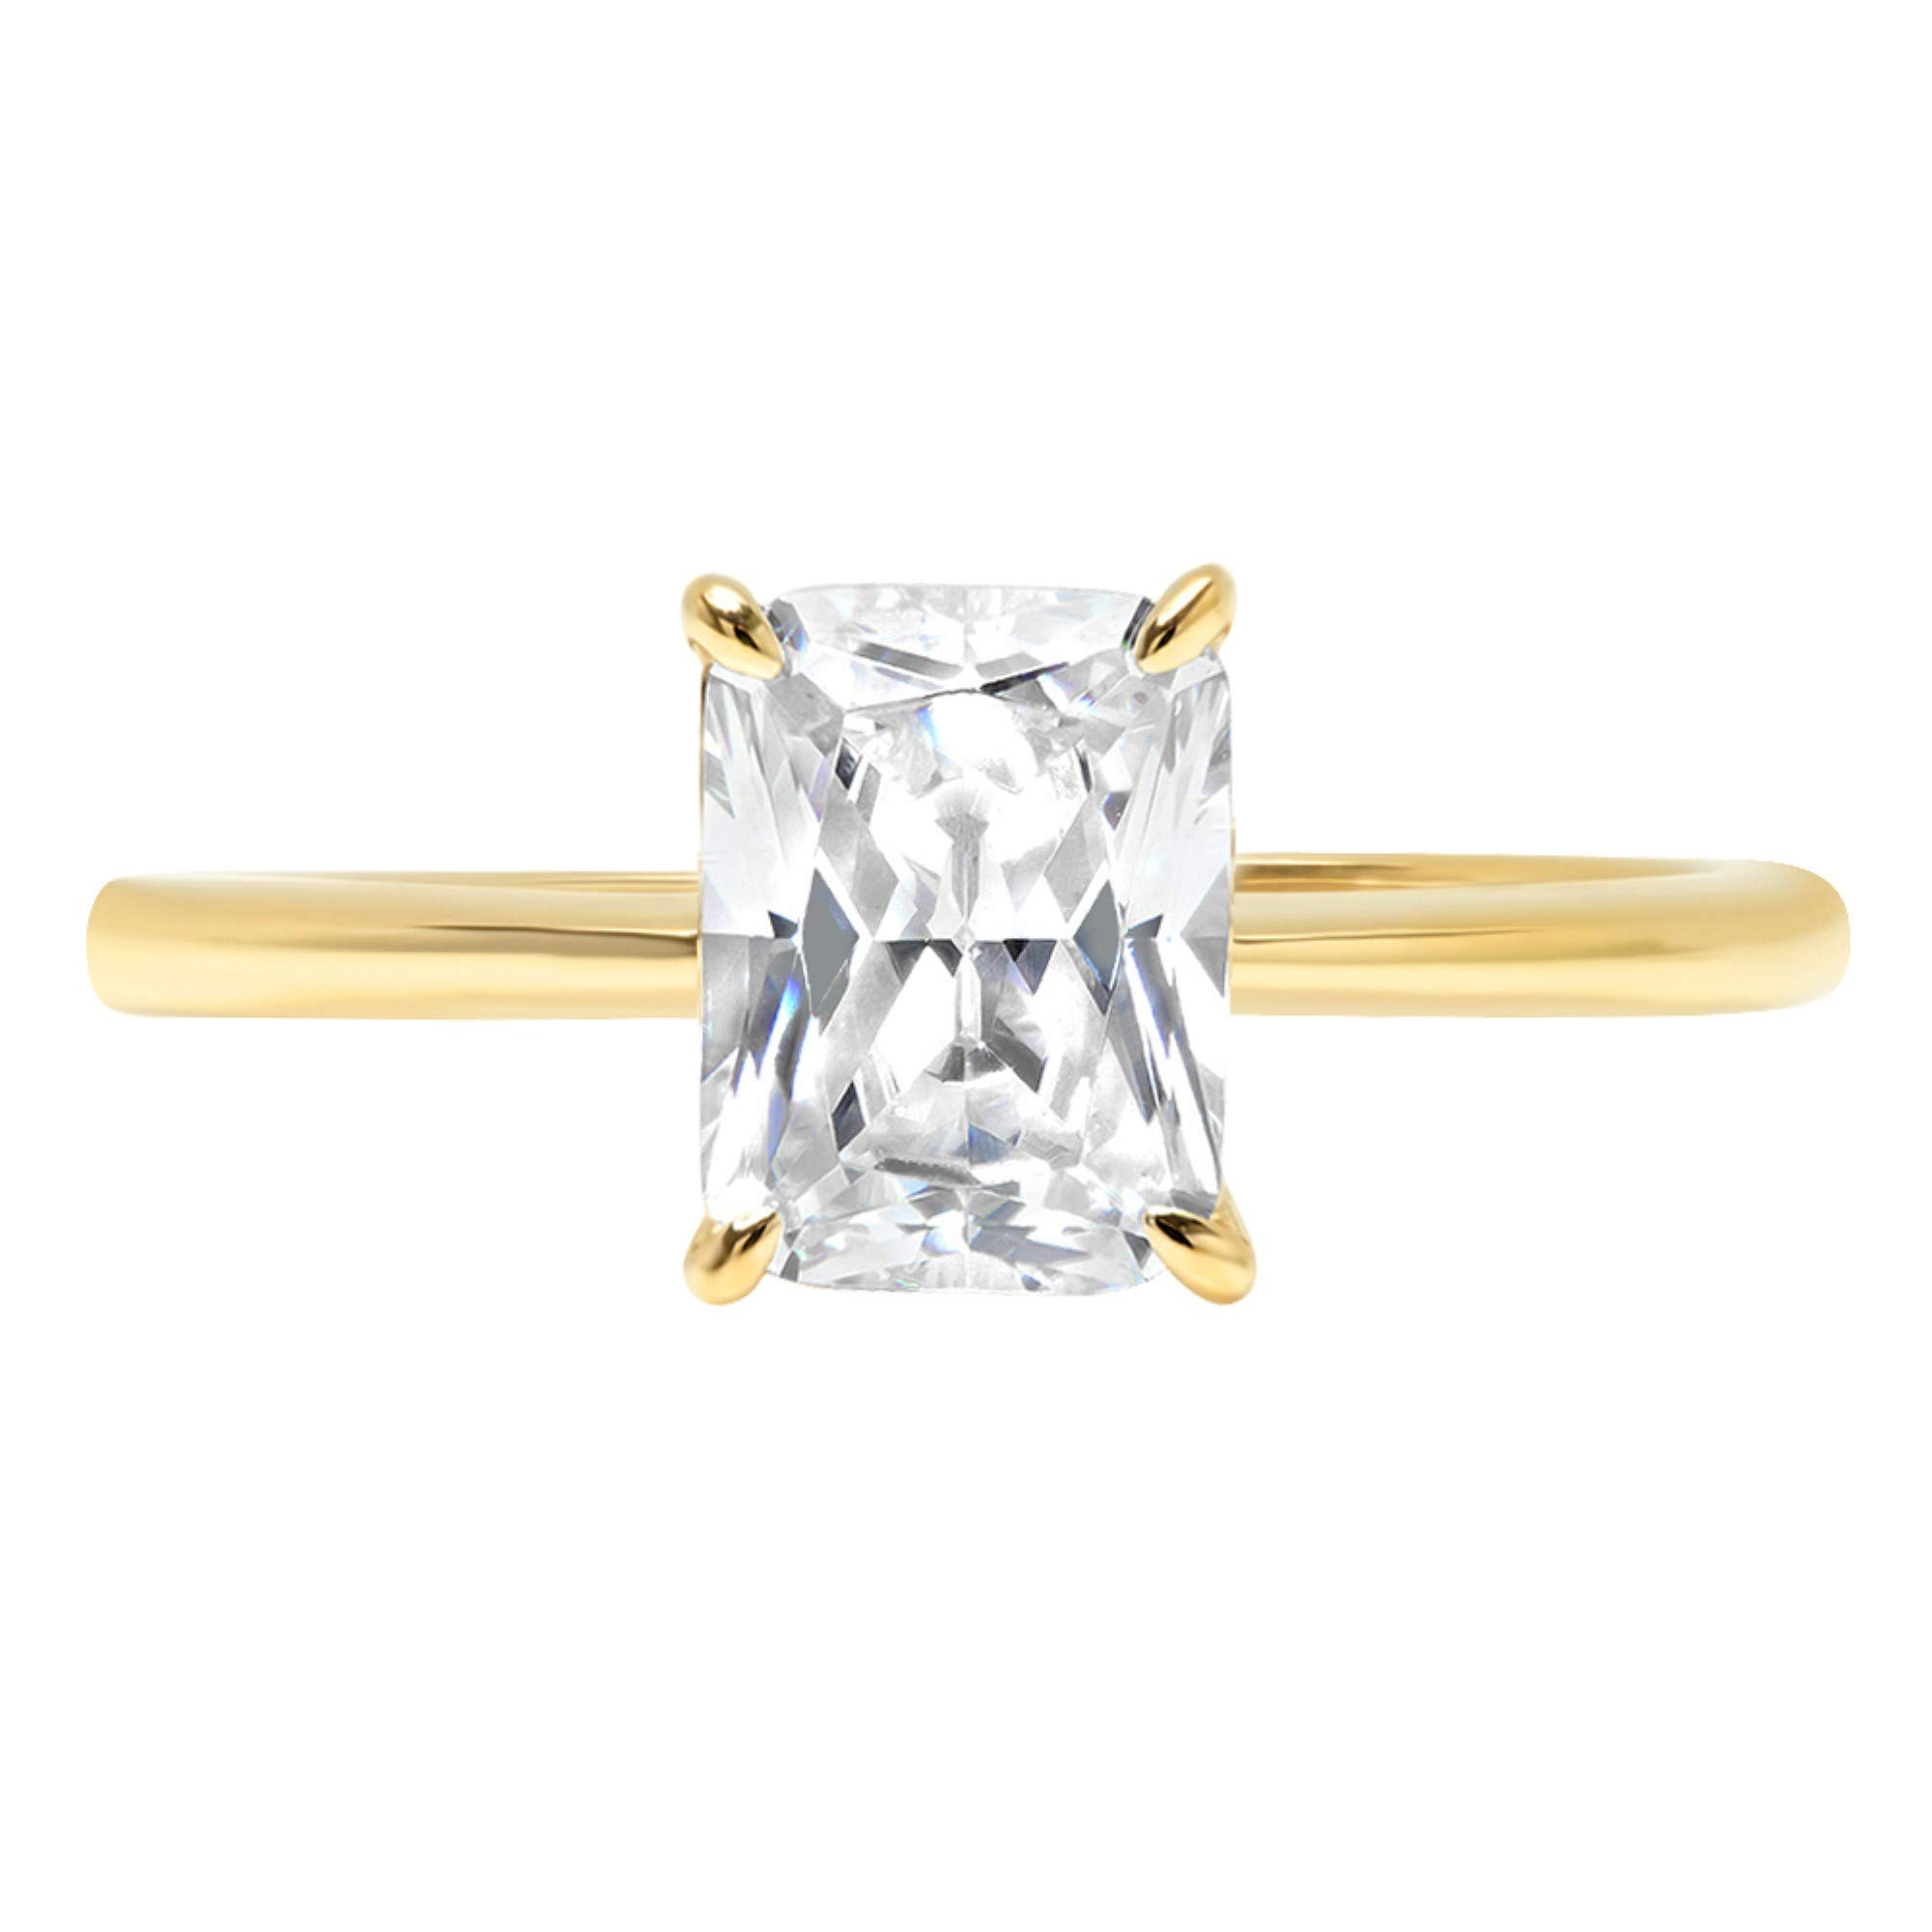 1.65ct Brilliant Radiant Cut Solitaire Highest Quality Lab Created White Sapphire Ideal VVS1 D 4-Prong Engagement Wedding Bridal Promise Anniversary Ring Solid Real 14k Yellow Gold for Women